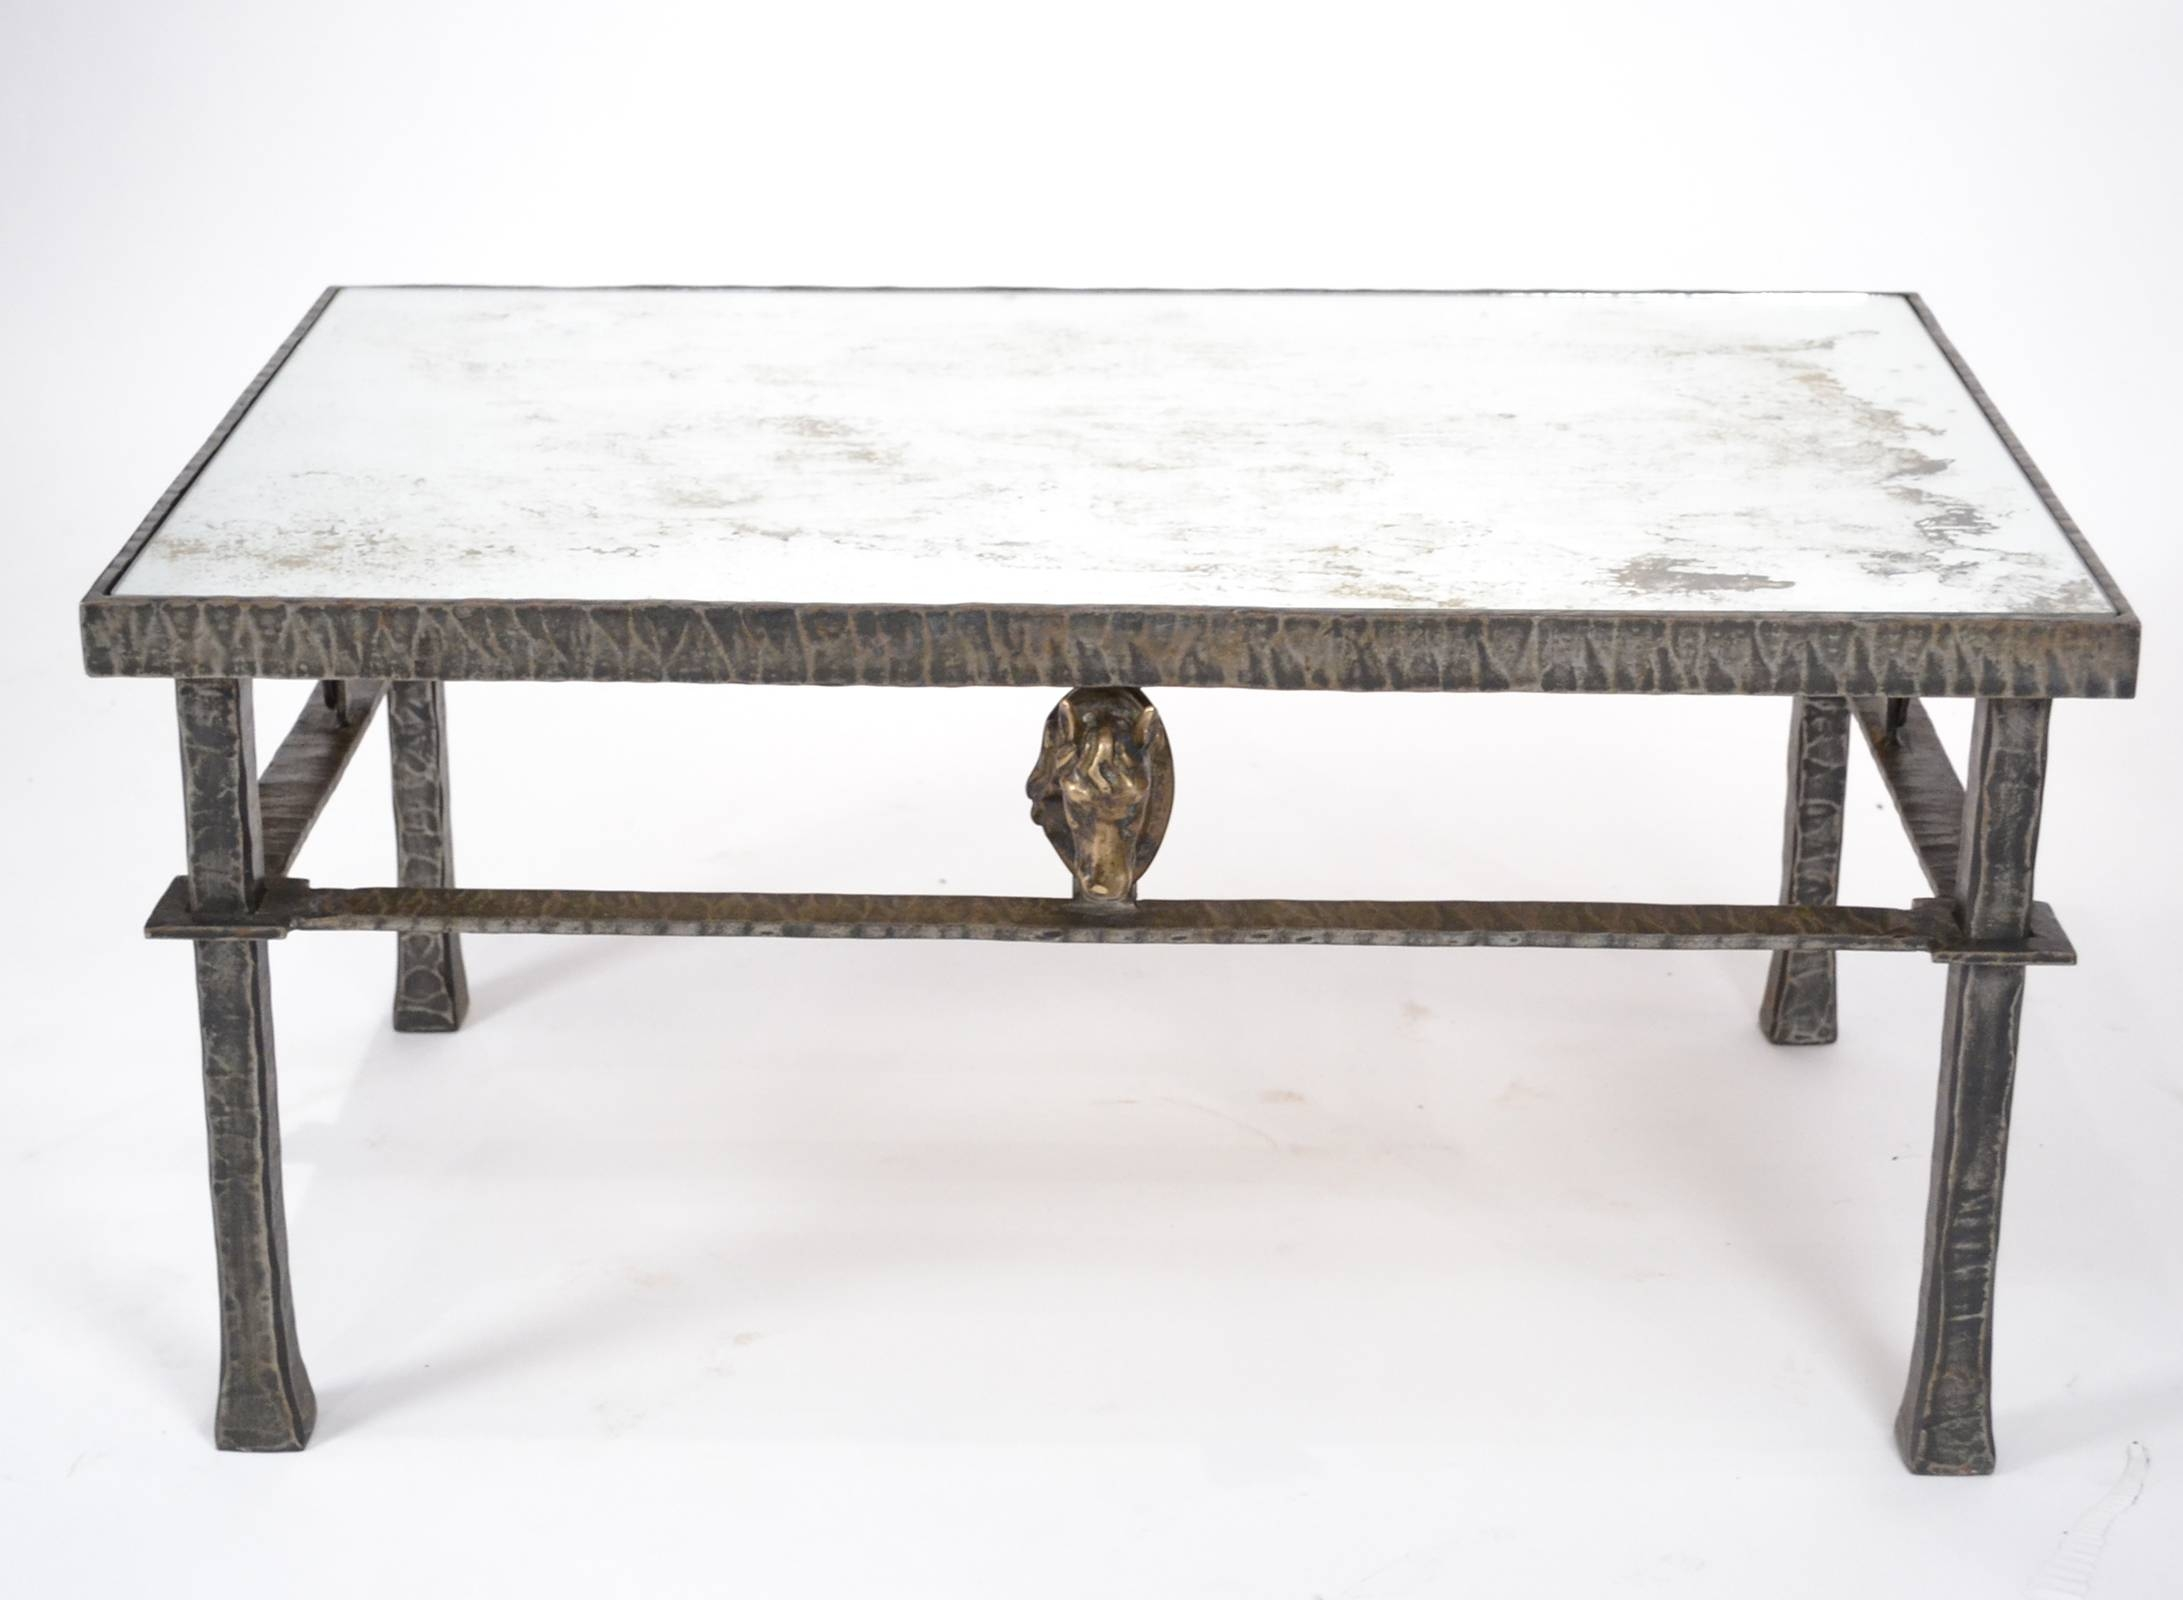 Vintage Forged Iron & Bronze Coffee Table - Jean Marc Fray pertaining to Bronze Coffee Tables (Image 30 of 30)